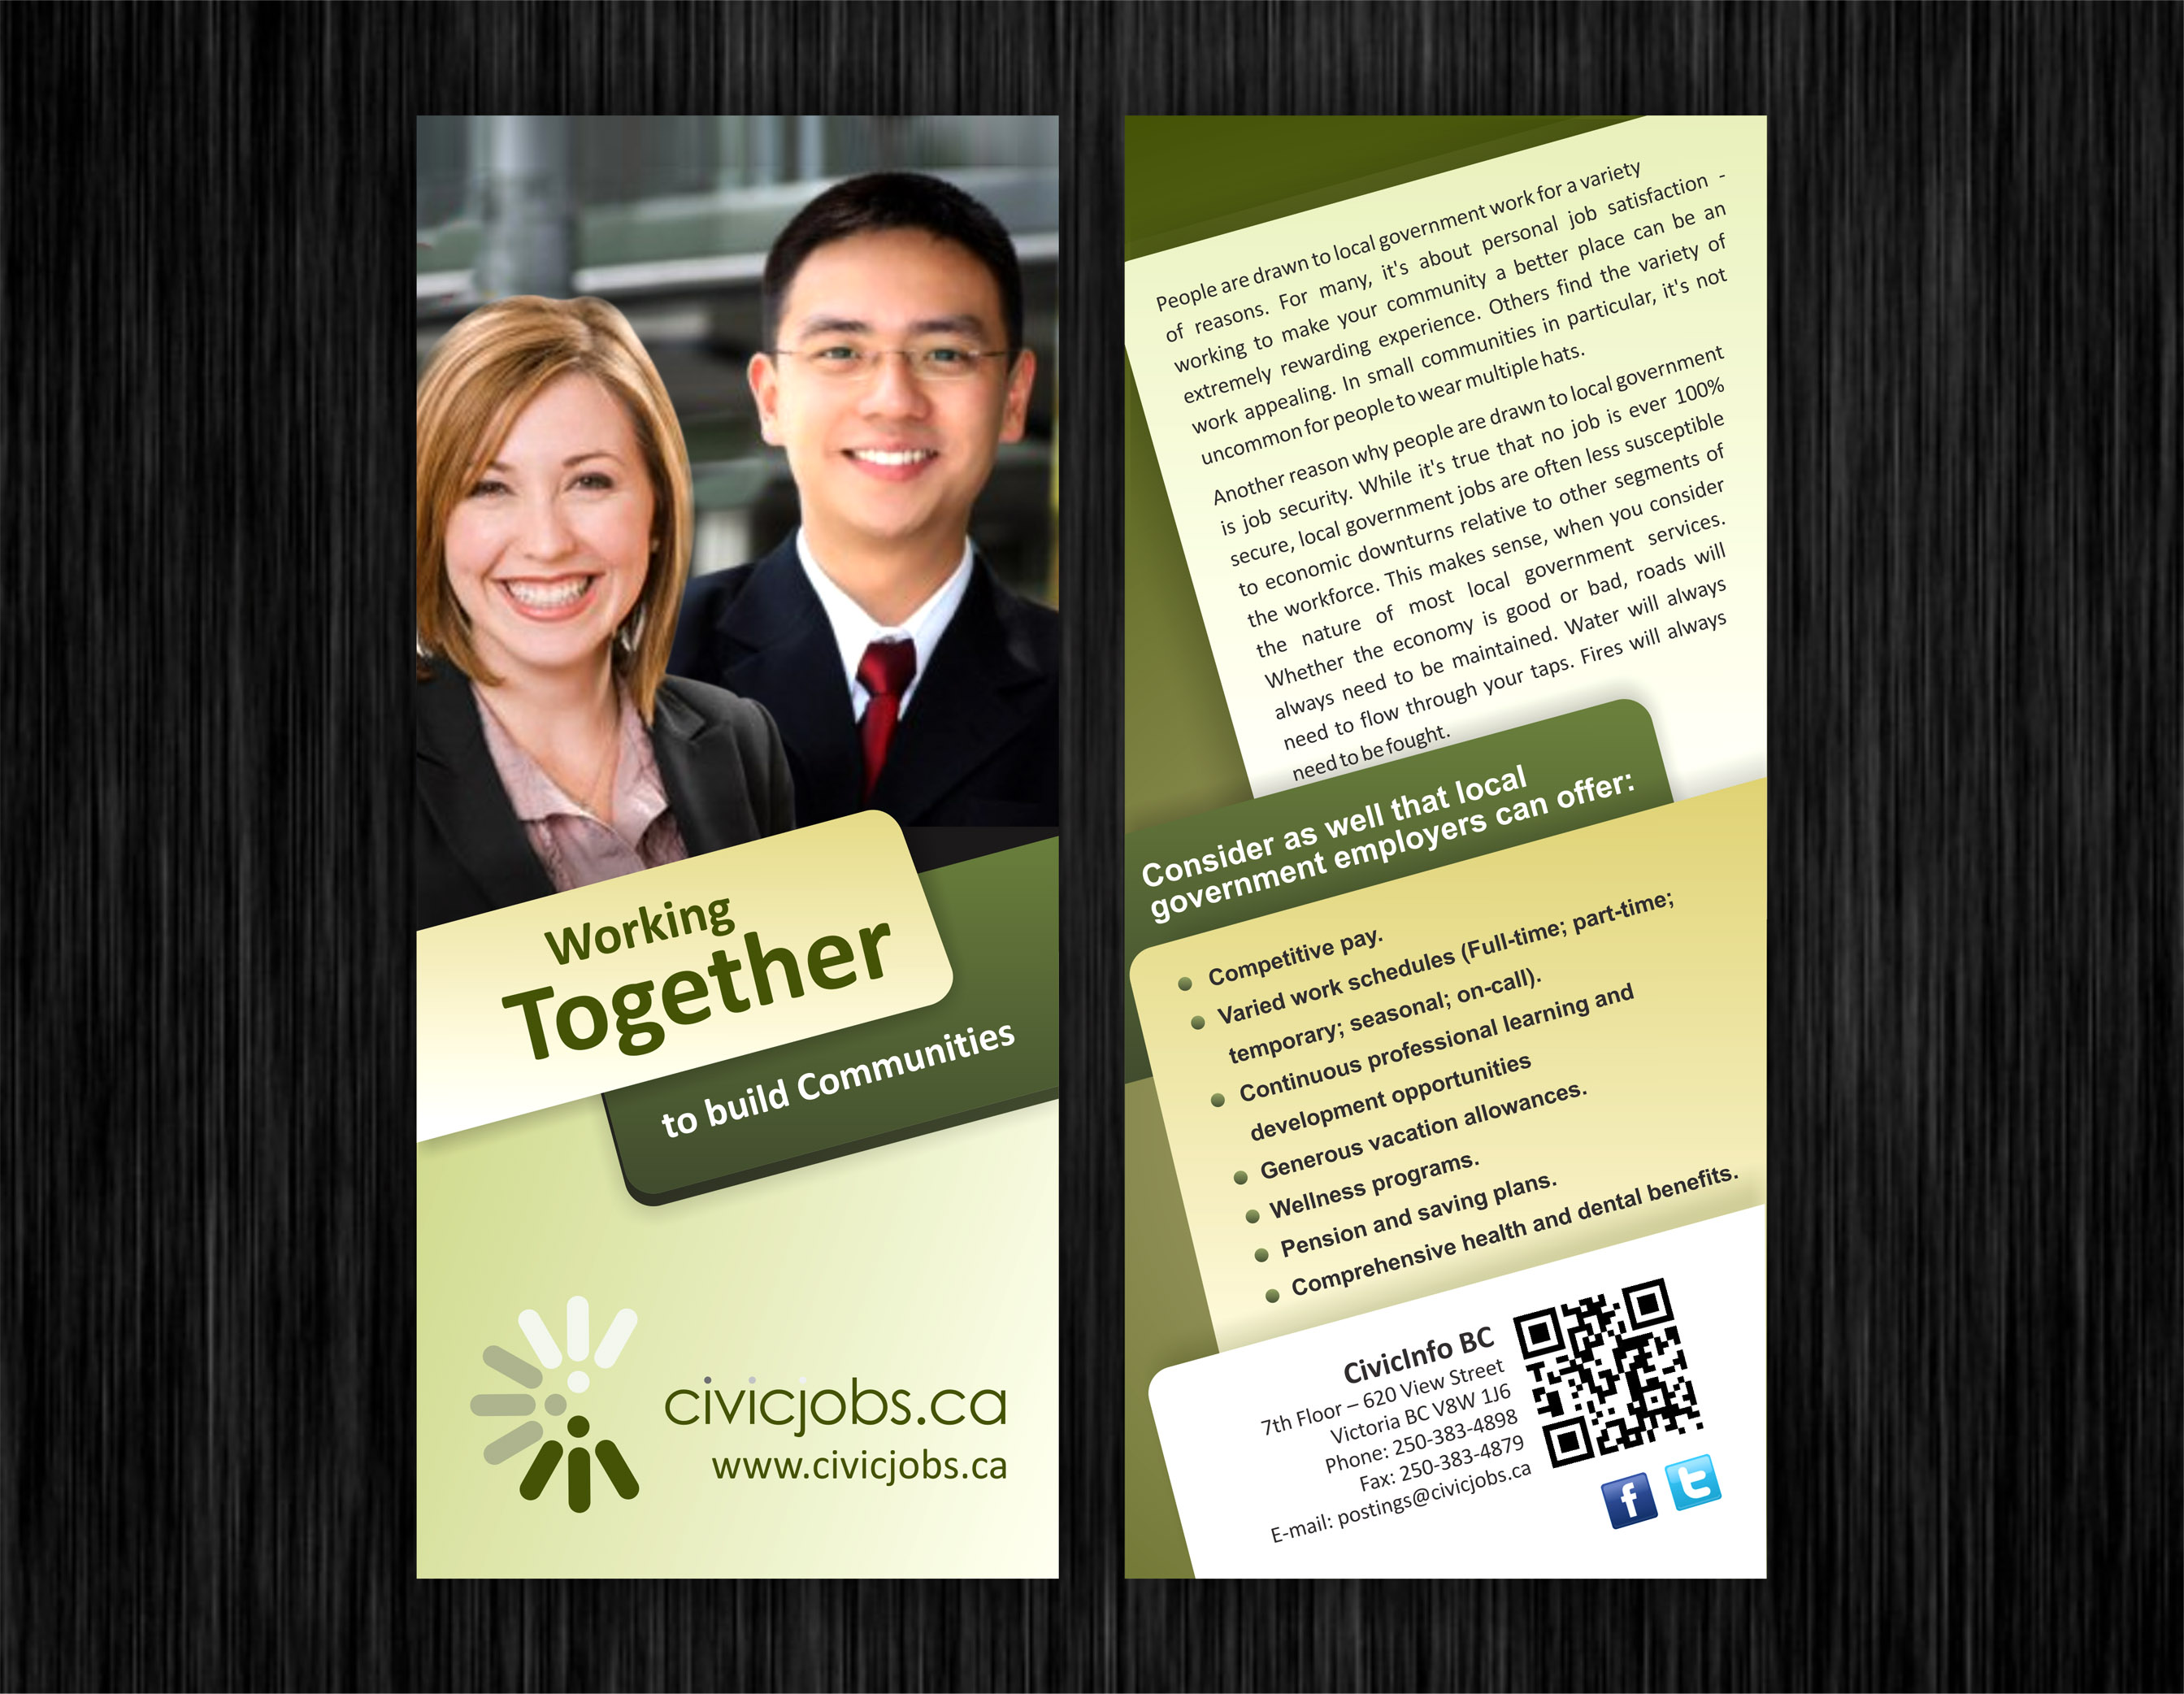 """Print Design by Muhammad Aslam - Entry No. 61 in the Print Design Contest Print Design Wanted for CivicJobs.ca - 4"""" X 9"""" rack card, 2 sided, print ready.."""